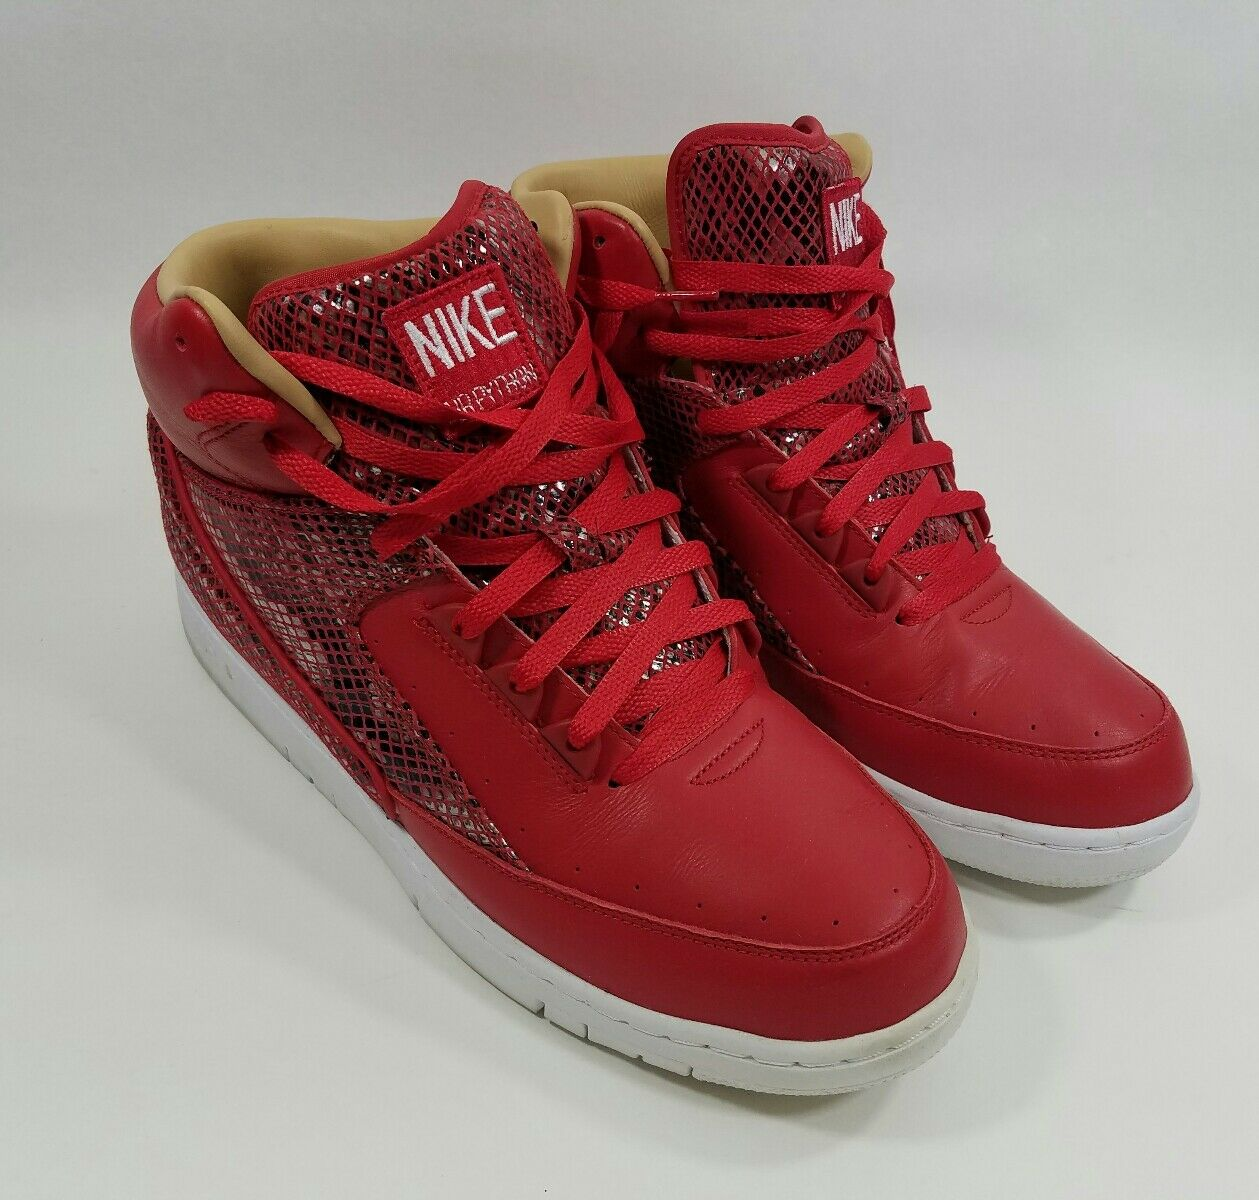 quality design 92c65 39ee7 france nike air python retrò sp lux rossa in pelle rossa lux bianca 632631  601 serpente